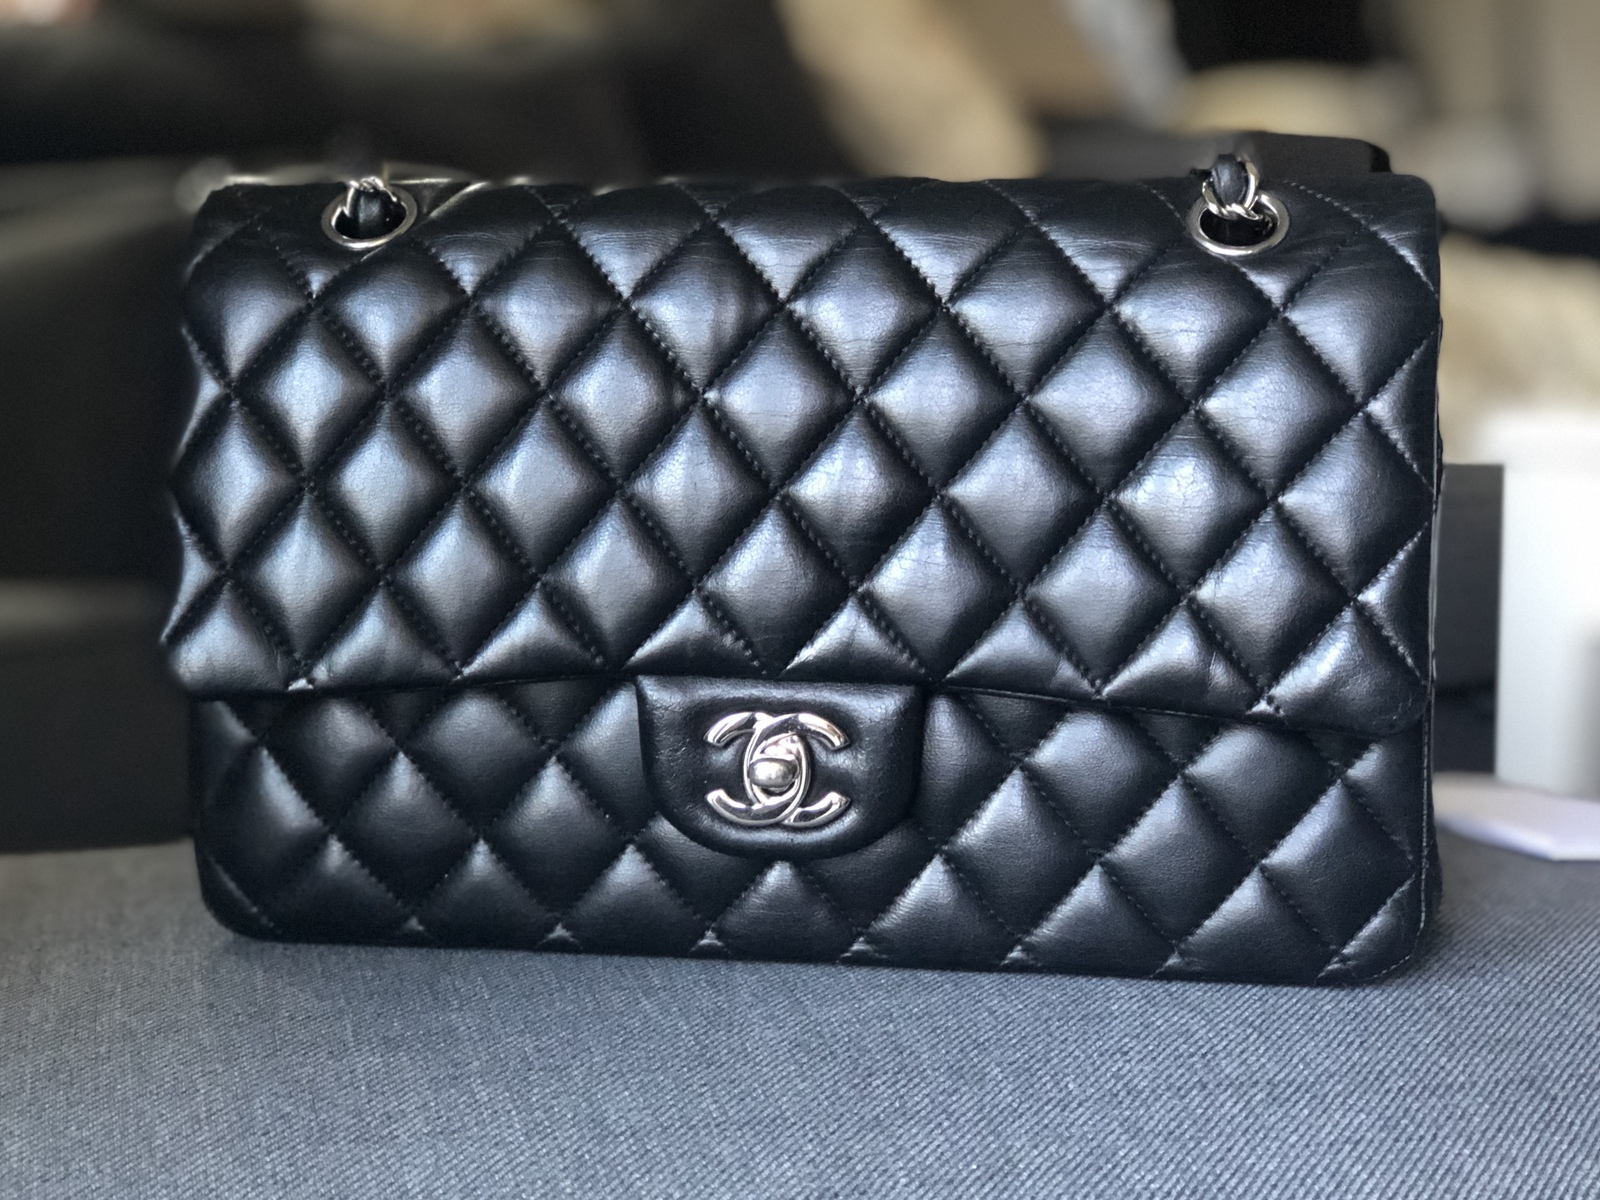 SALE* AUTHENTIC Chanel Quilted Lambskin Classic Medium Black Double Flap Bag SHW